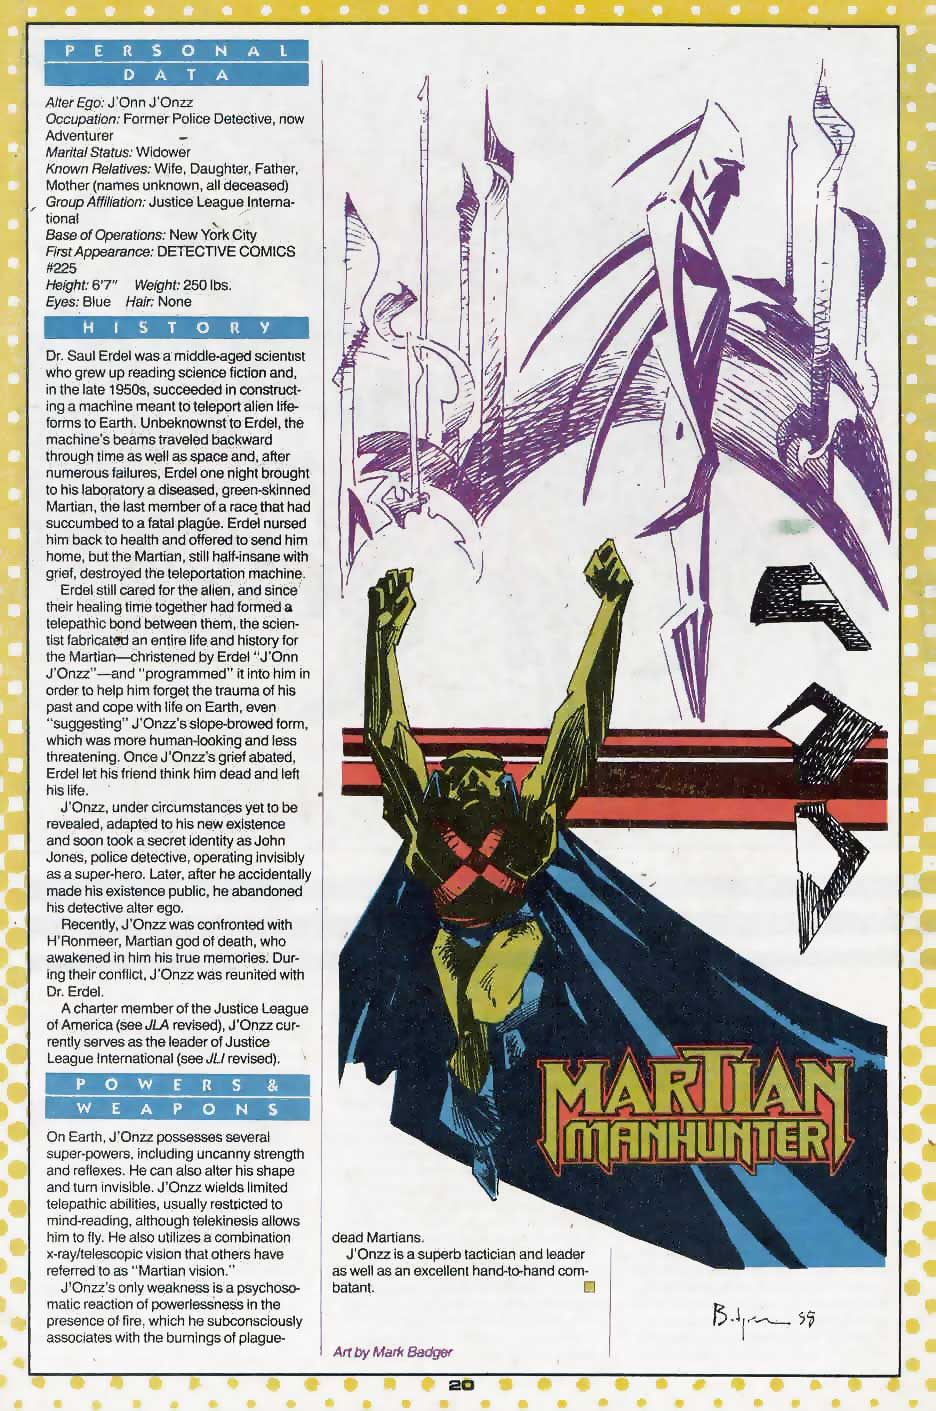 Who's Who Update 88 #2 Martian Manhunter by Mark Badger